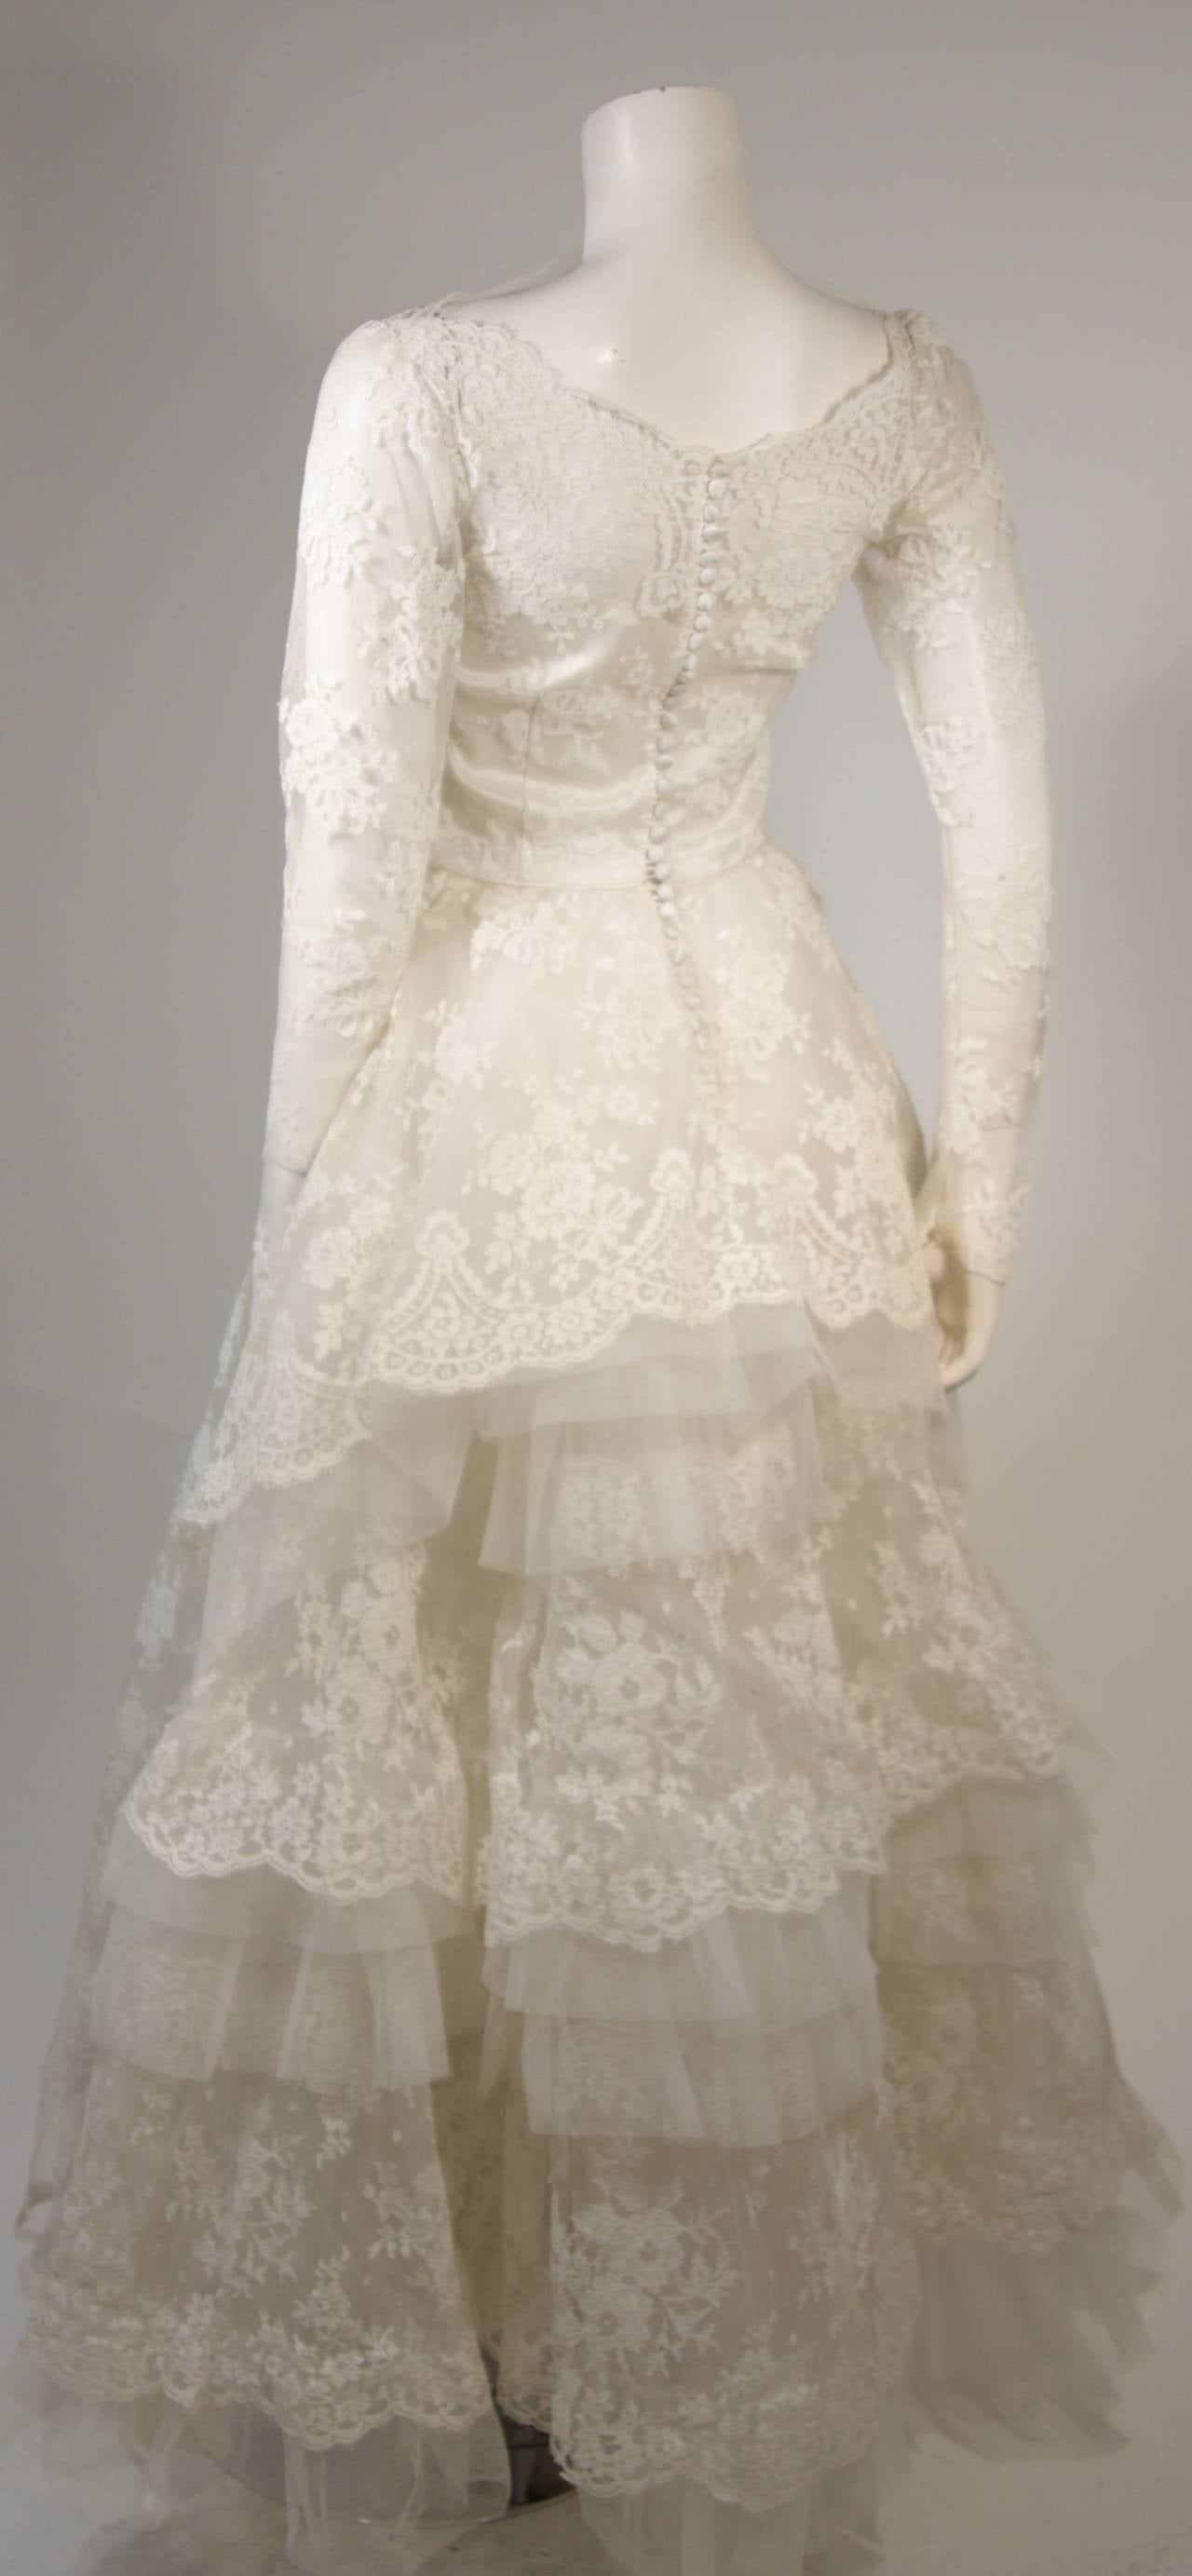 Vintage Lace Wedding Gown with Scalloped Edges and Long Sleeves Size Small For Sale 2